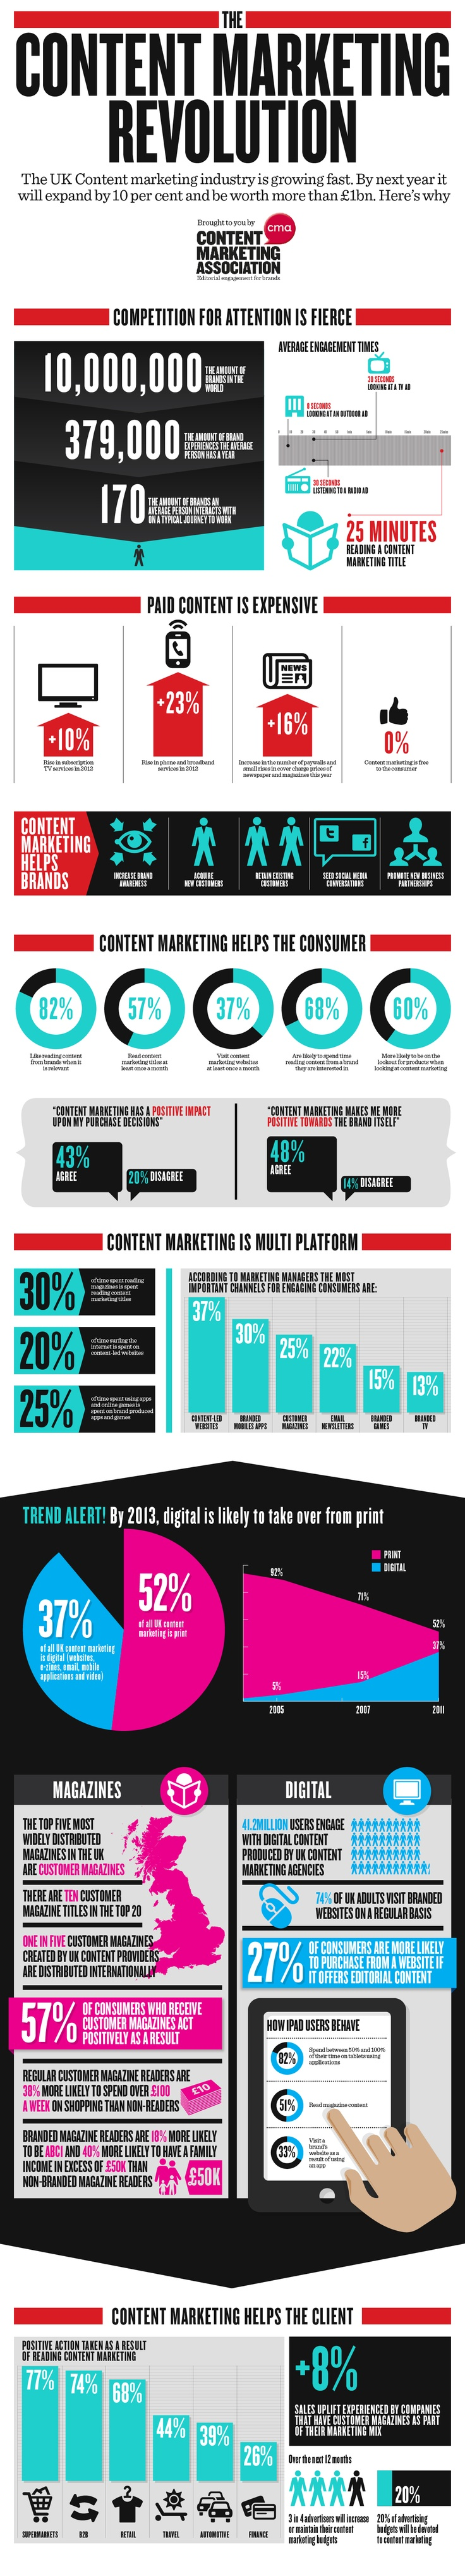 Content Marketing Revolution [Infographic]